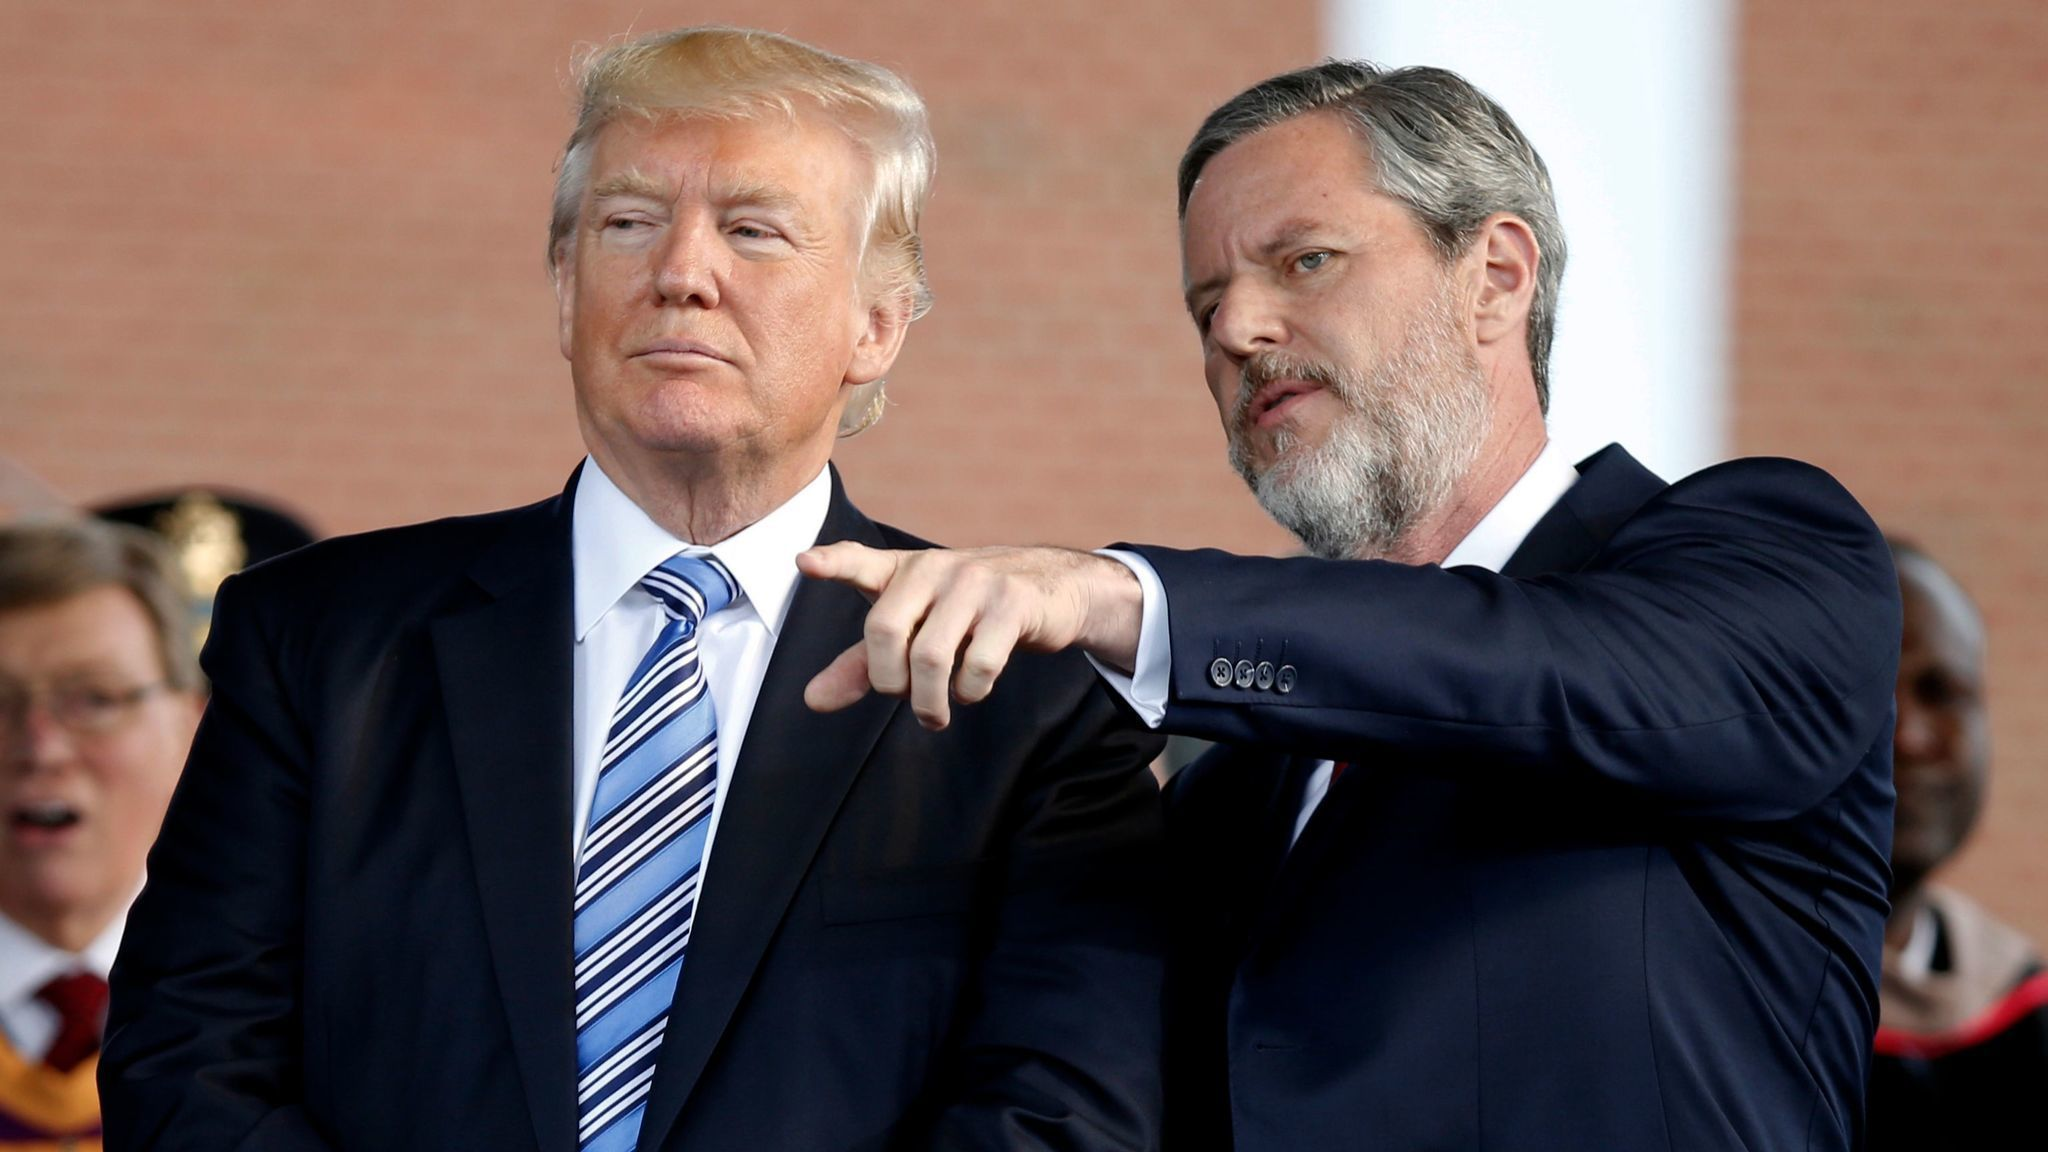 What Opposition Now Stands For >> Under Trump, evangelicals show their true racist colors - LA Times